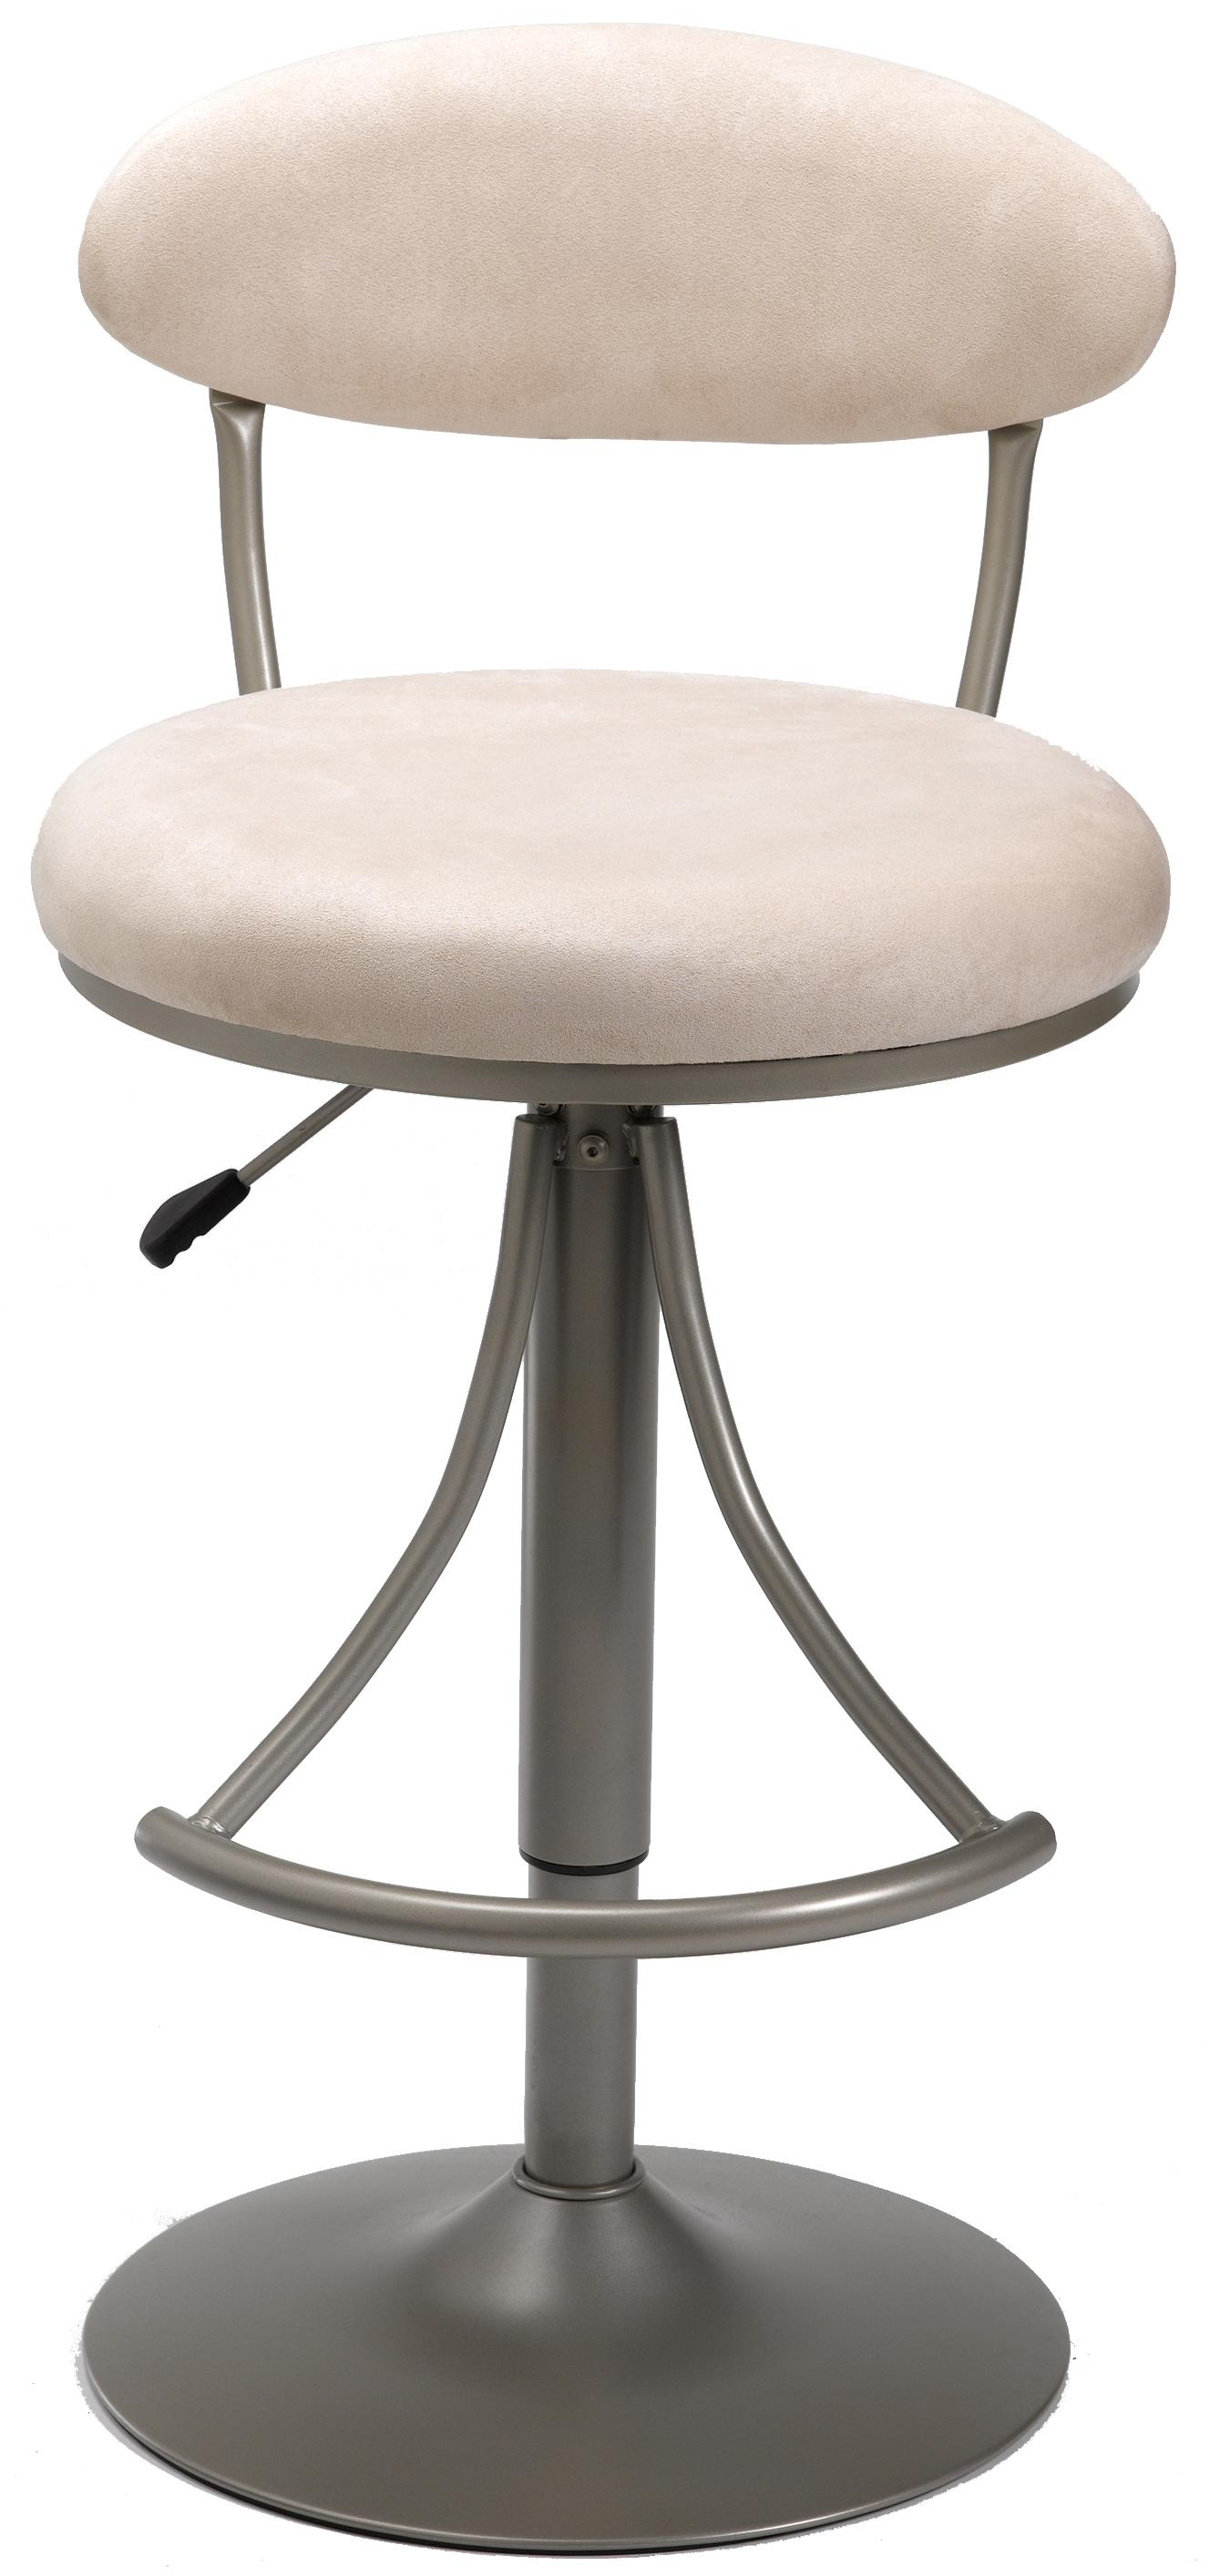 Hillsdale Metal Stools Adjustable Height Venus Swivel Stool - Item Number: 4210-827